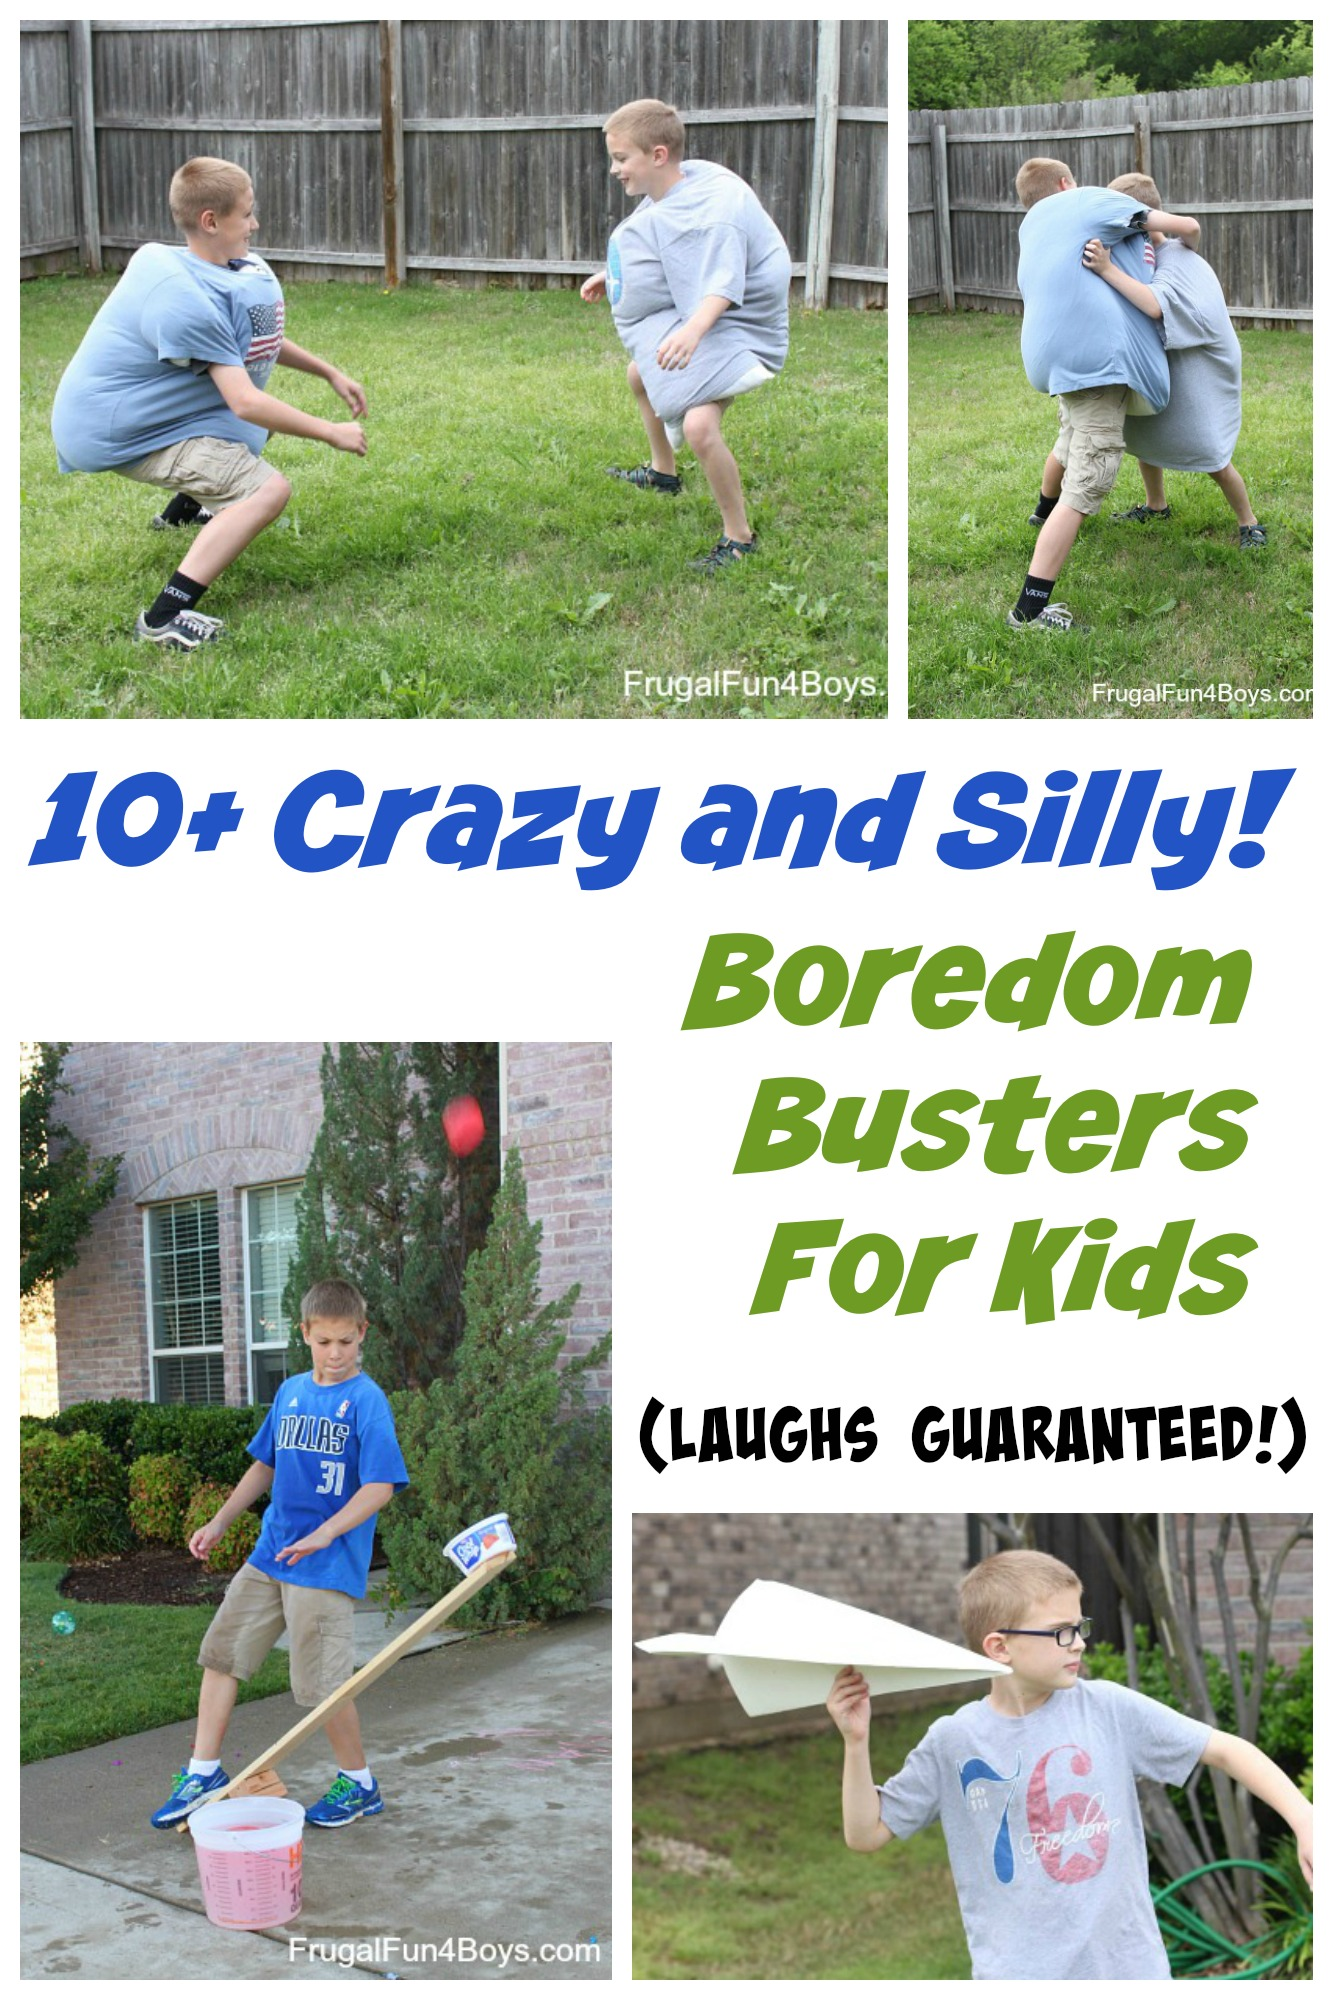 10+ Crazy and Silly Boredom Busters for Kids